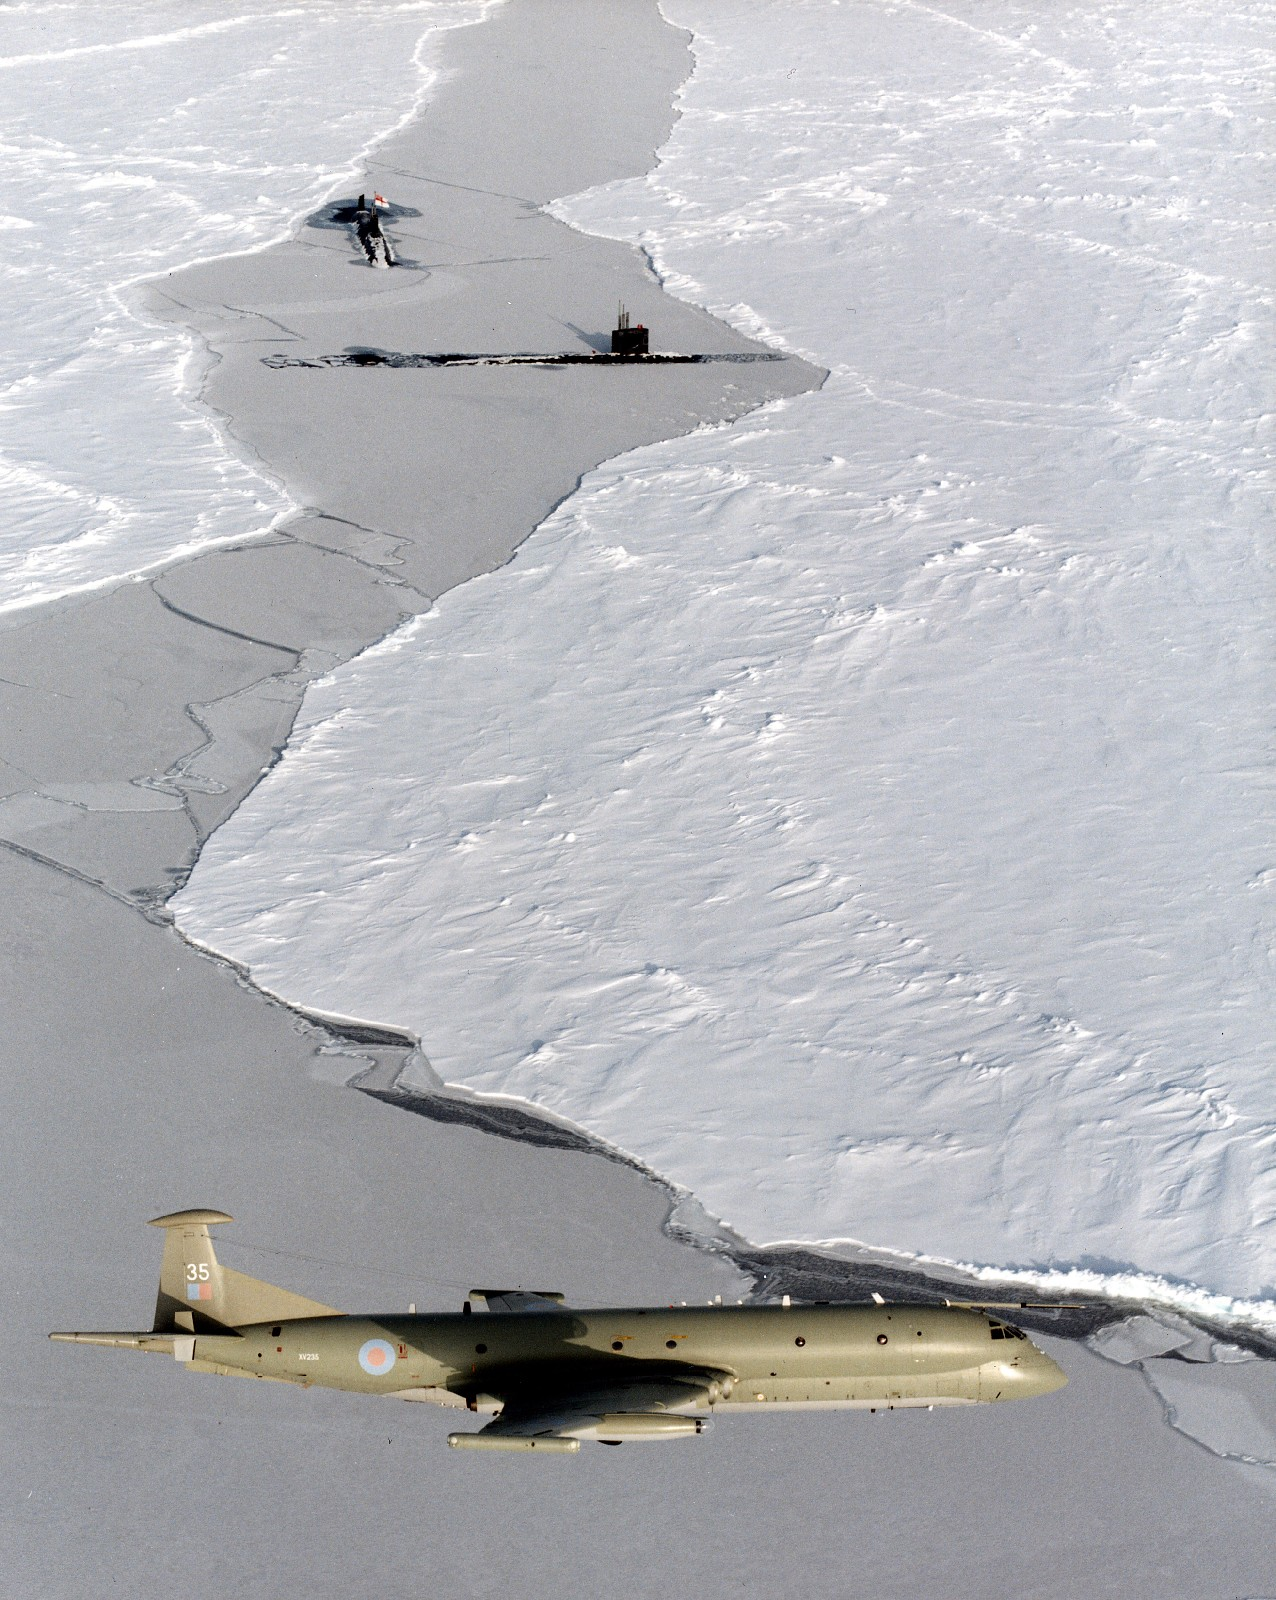 An_RAF_Nimrod_MR2_on_patrol_in_the_skies_over_the_ice,_it_is_shown_with_two_submarines_just_br...jpg